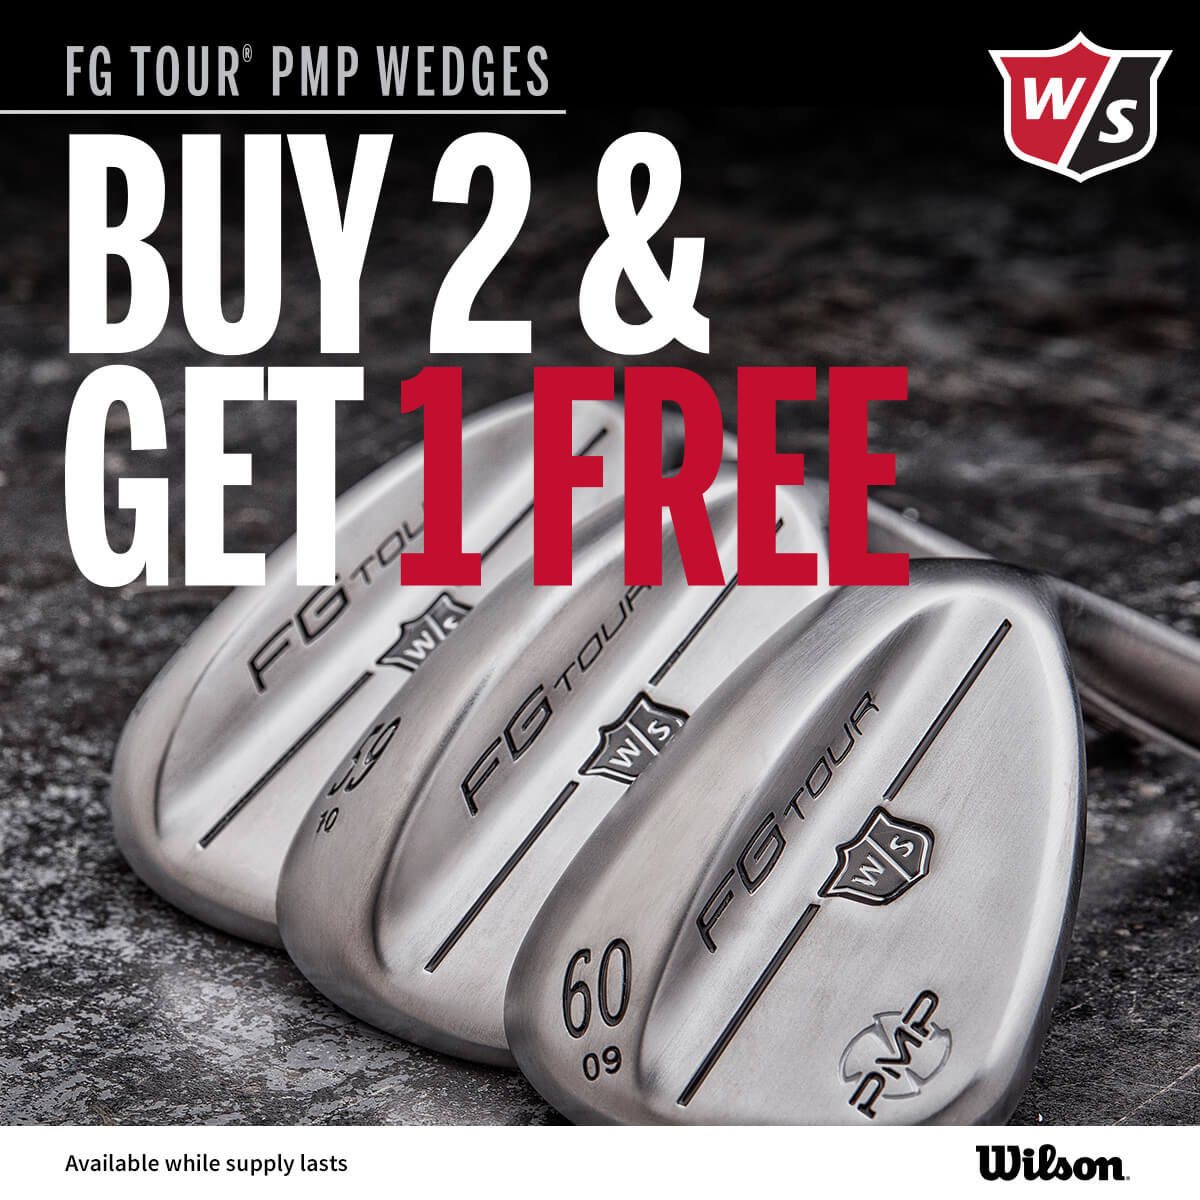 Wilson PMP Wedges 3 for 2